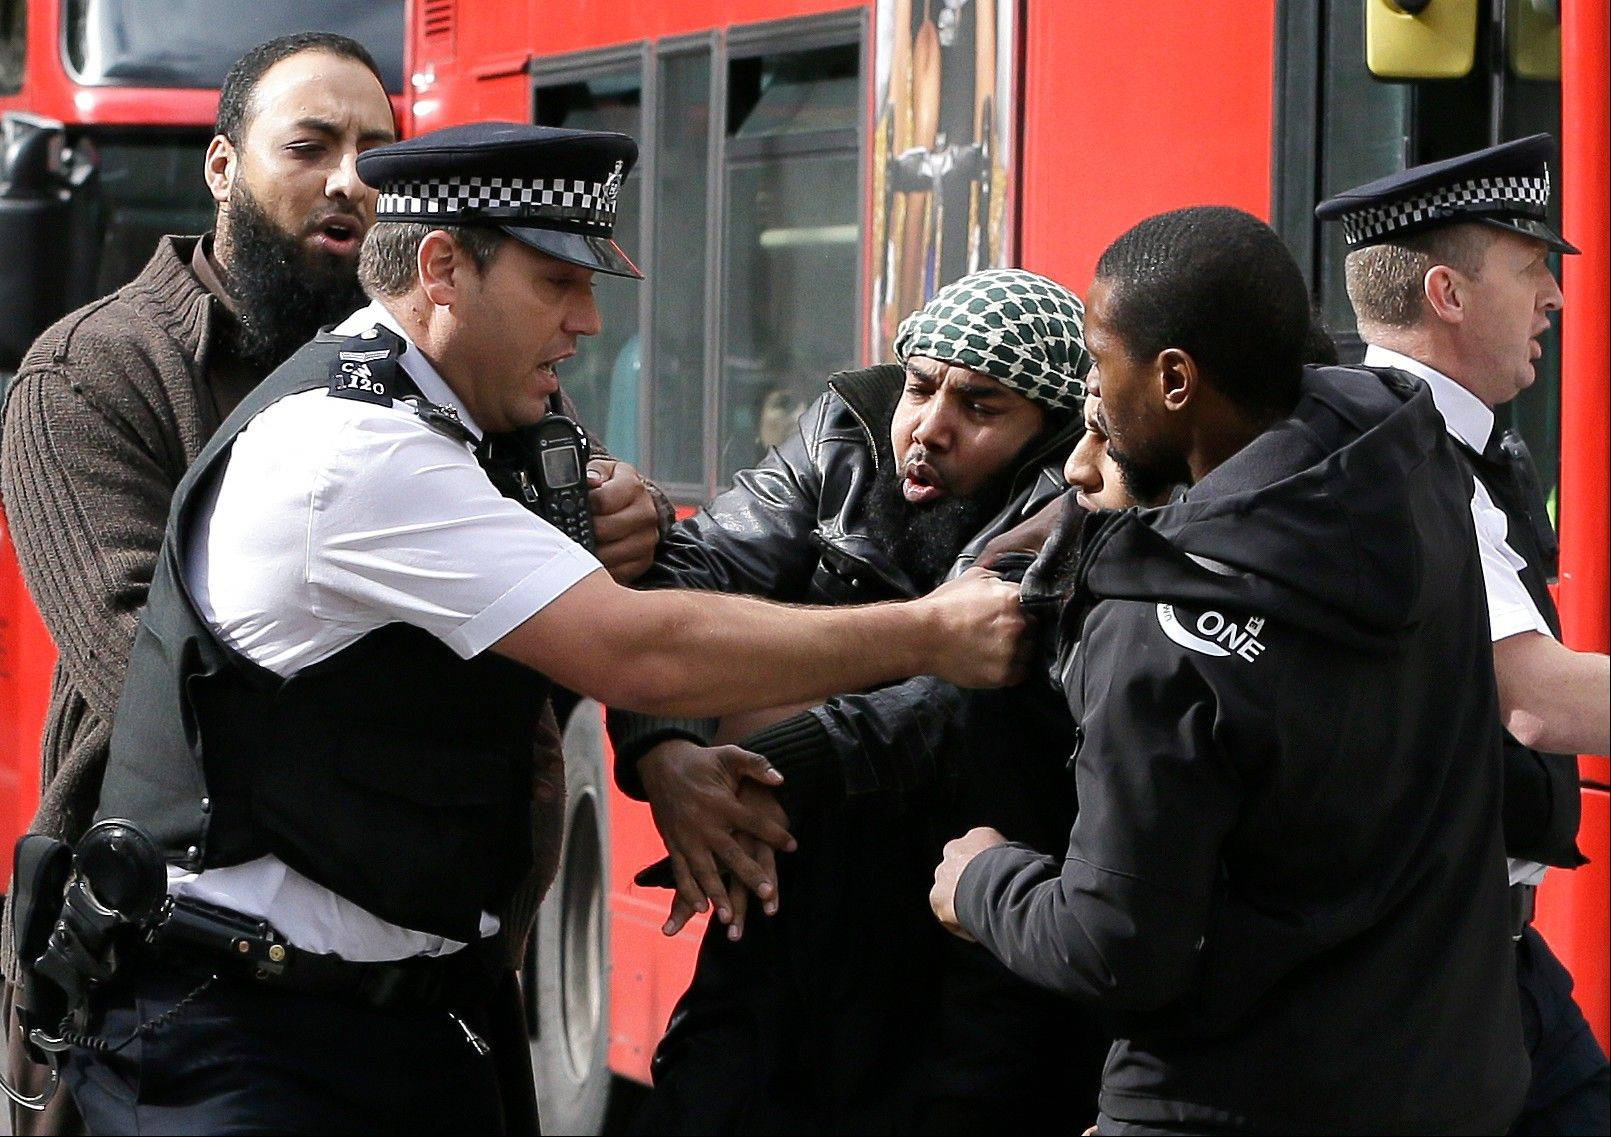 Demonstrators clash with police officers outside The Royal Courts of Justice in London Friday, Oct. 5, 2012. A British court ruled Friday that al-Masri and four other terror suspects can be extradited immediately to the U.S. to face charges there.